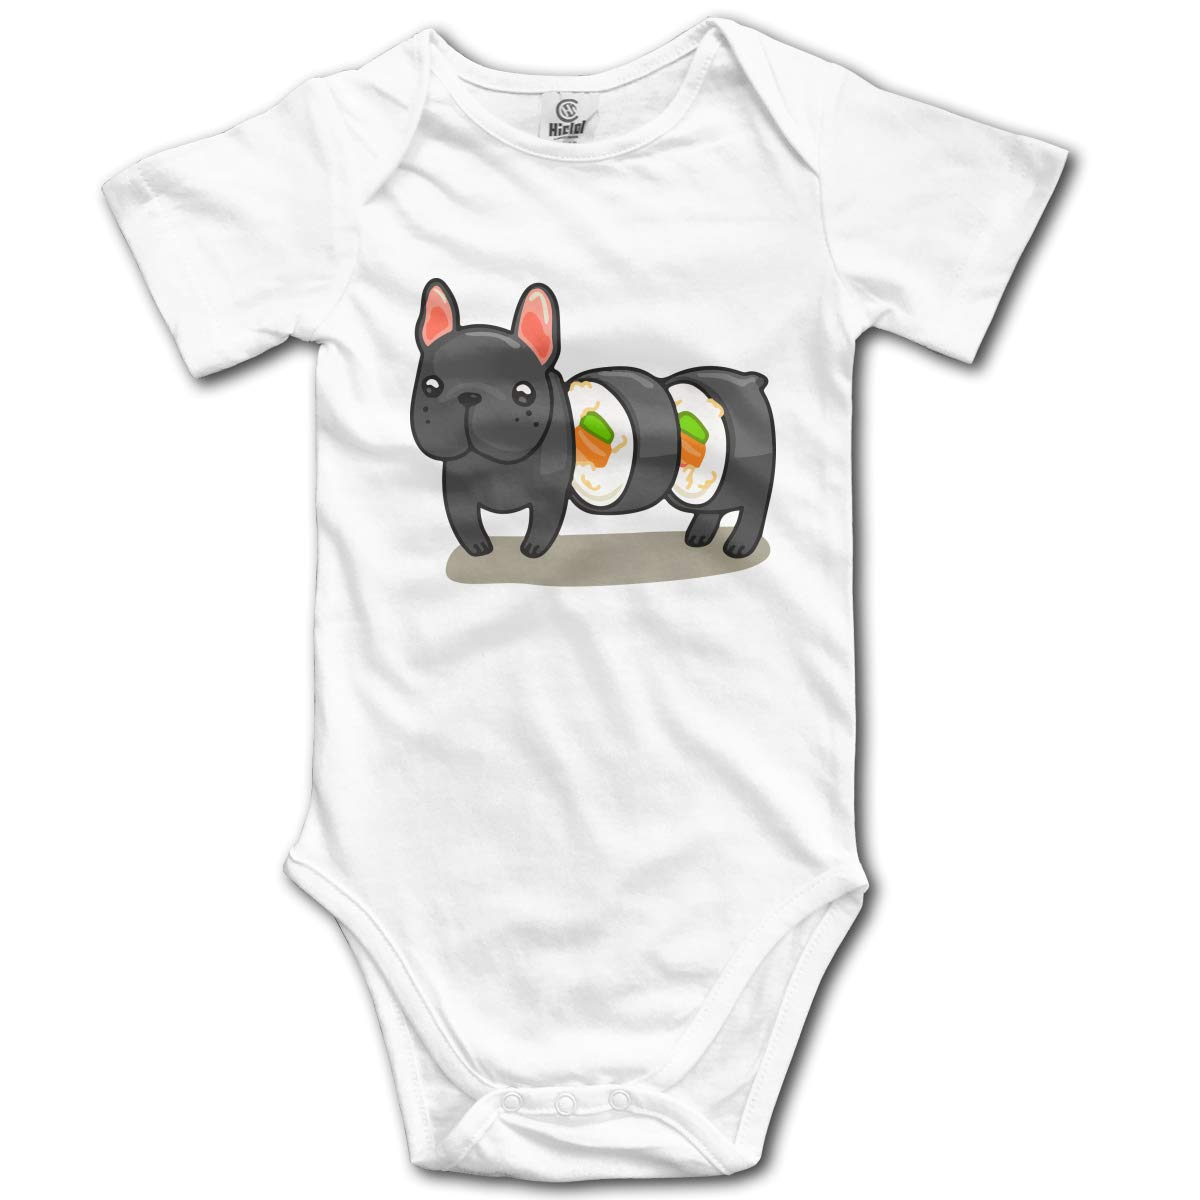 CDHL99 Frenchie Sushi Roll Unisex Solid Baby Short Sleeve Jumpsuit Outfit 0-2T